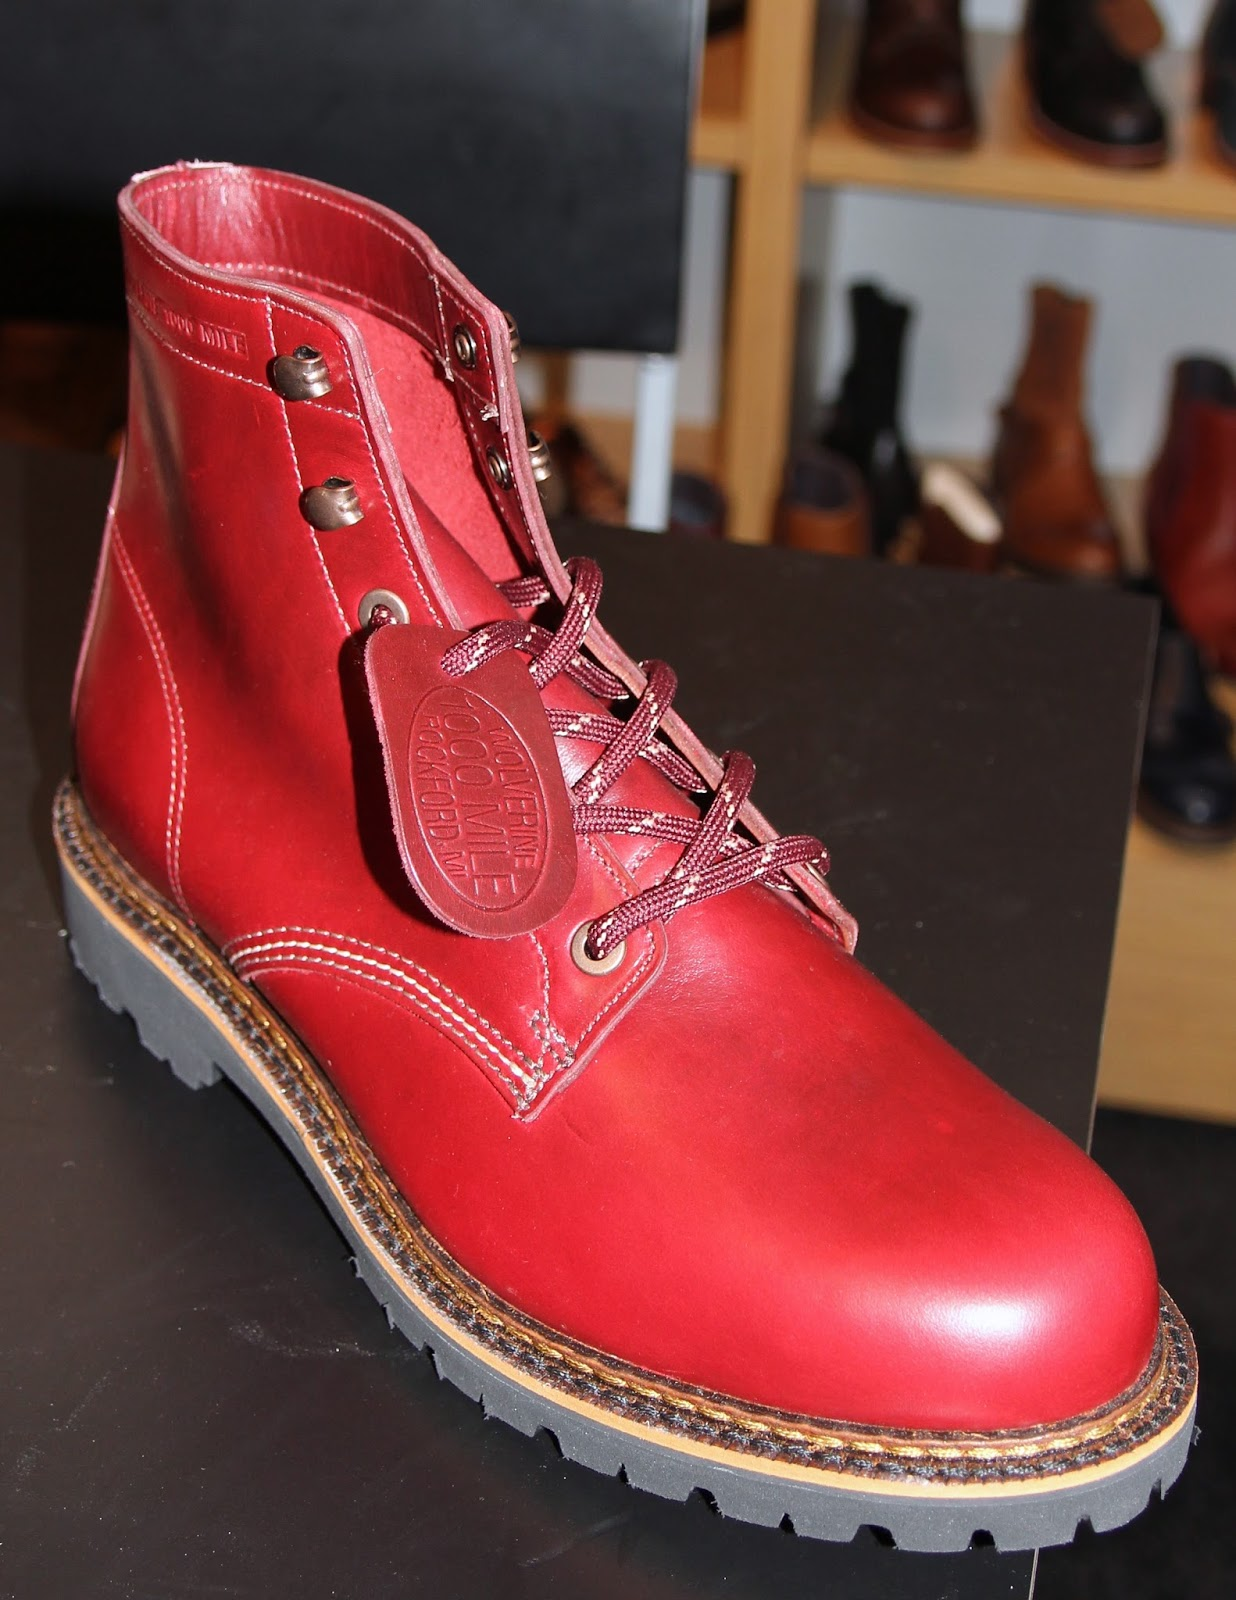 620c8b8851 RED RED RED-Wolverine 1000 Mile Boot for men made in the USA -Horween®  leather